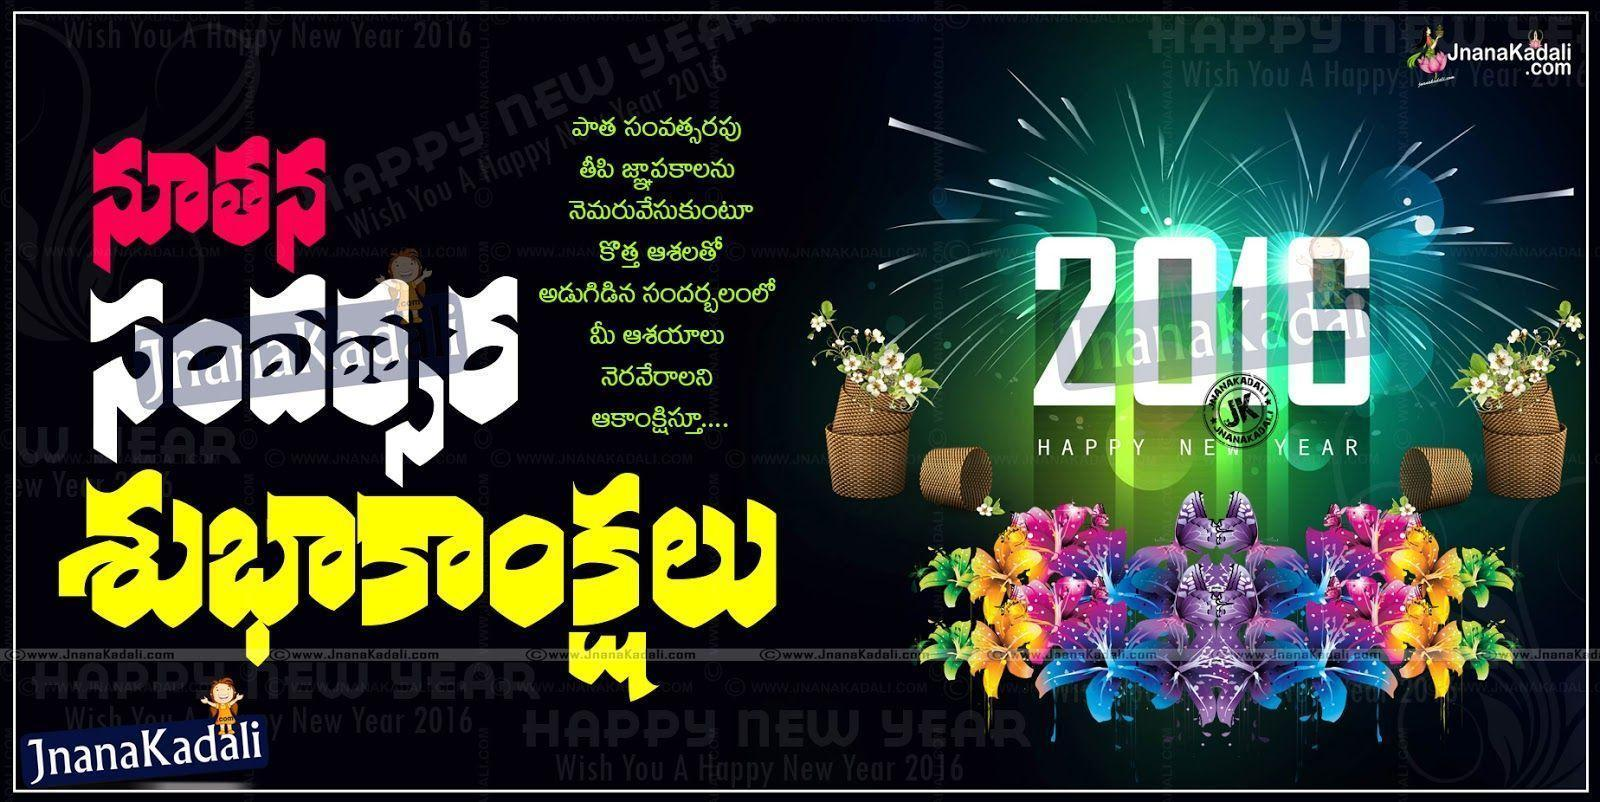 New Year 2016 Greetings Wallpapers Wallpaper Cave